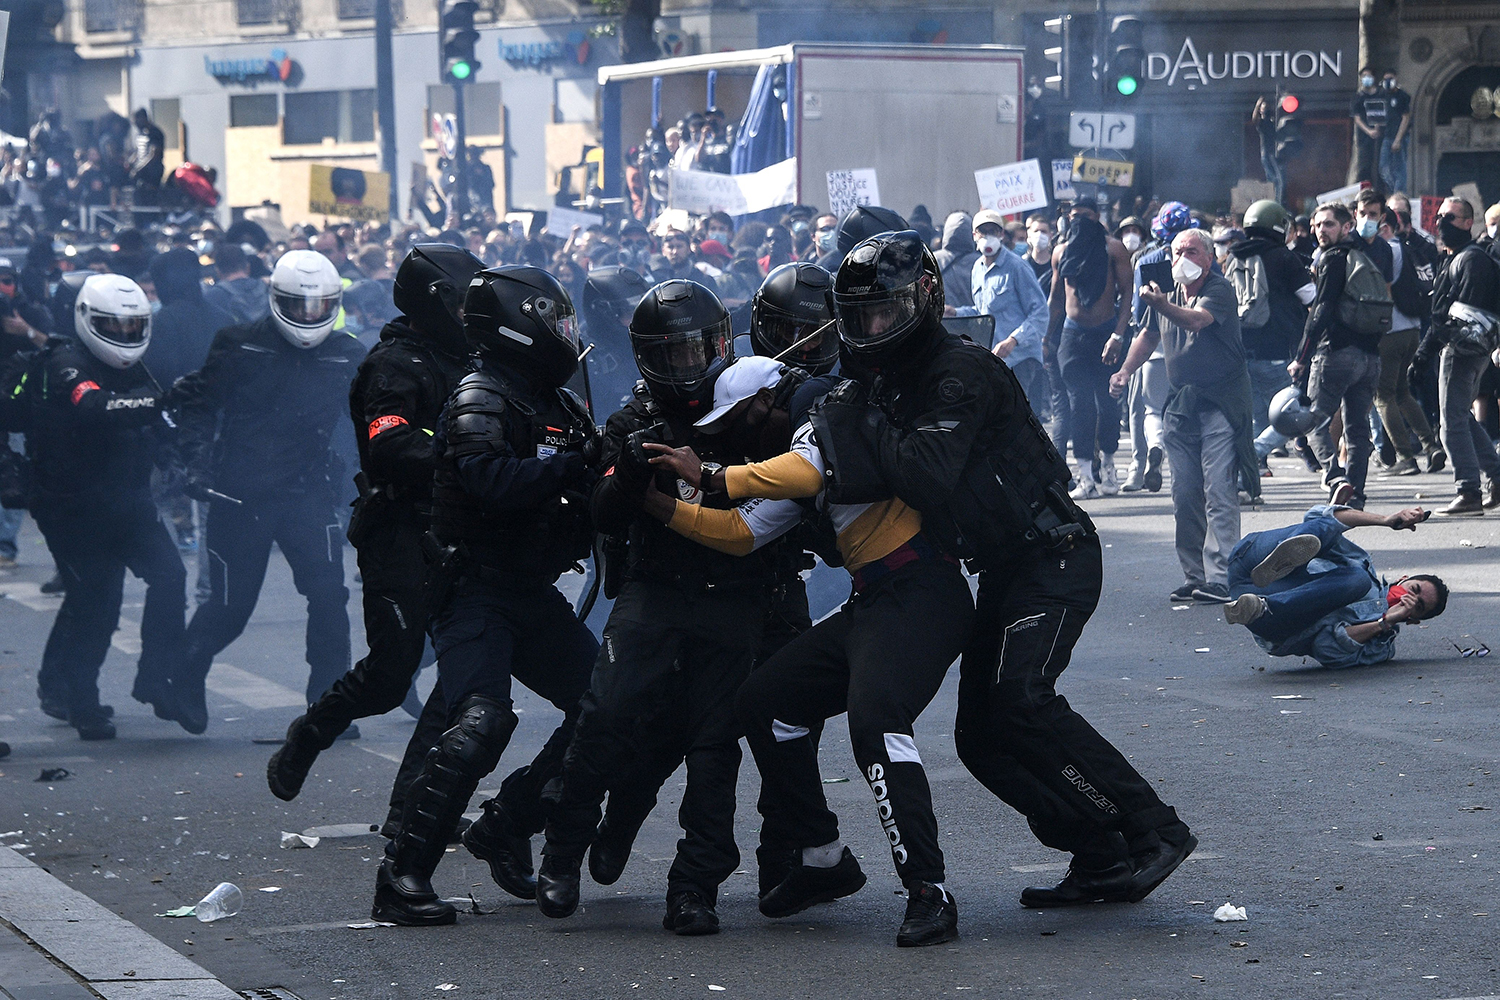 French riot police detain a protester during one of many Black Lives Matter worldwide protests against racism and police brutality on Place de la Republique in Paris on June 13. A wave of global protests in the wake of George Floyd's fatal arrest magnified attention on the 2016 death in French police custody of Adama Traore, a 24-year-old Black man. ANNE-CHRISTINE POUJOULAT/AFP via Getty Images